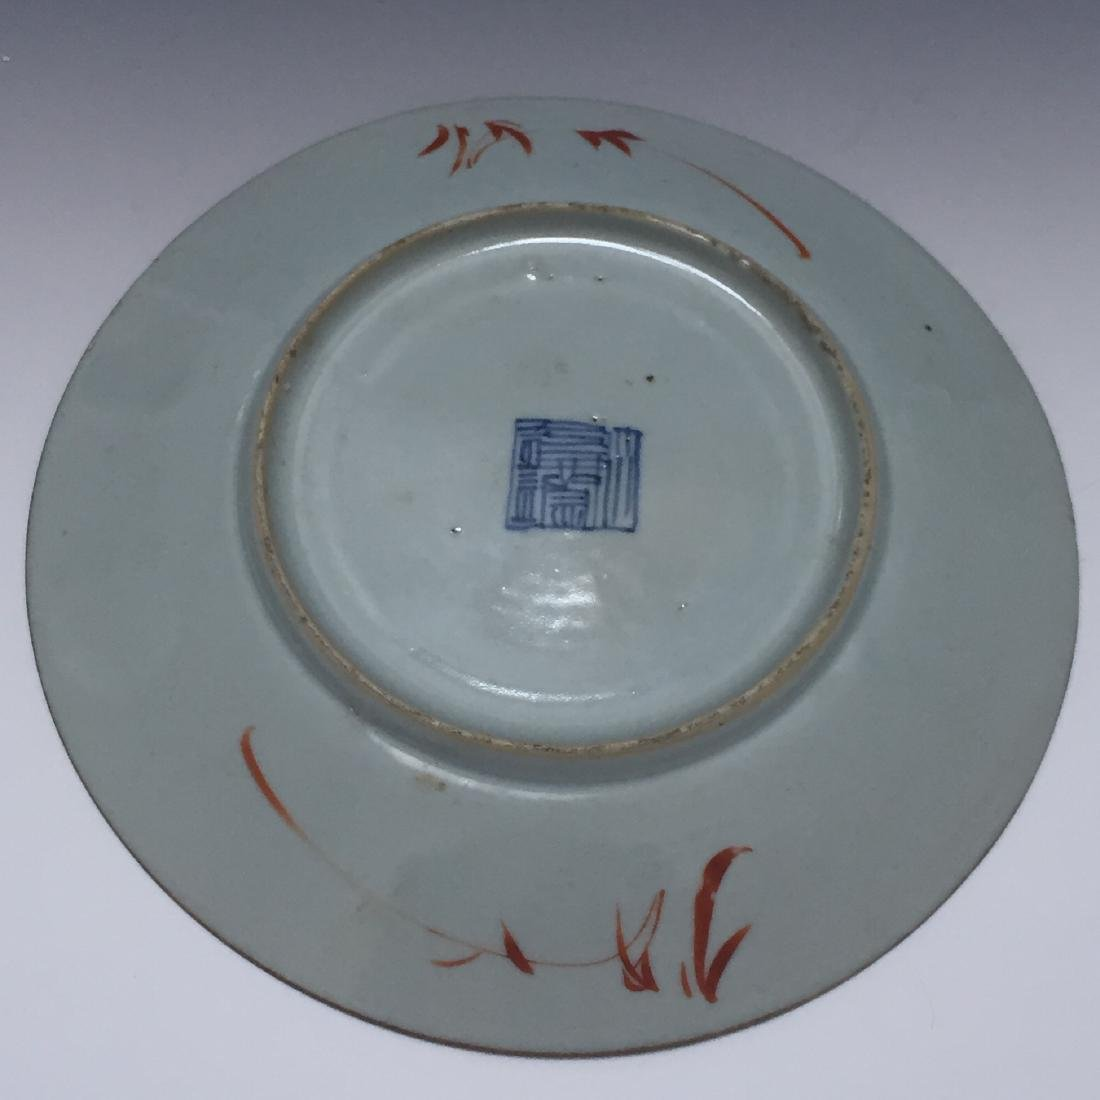 A BUEATIFUL CHINESE ANTIQUE FAMILLE ROSE DISH, 19TH CT - 6